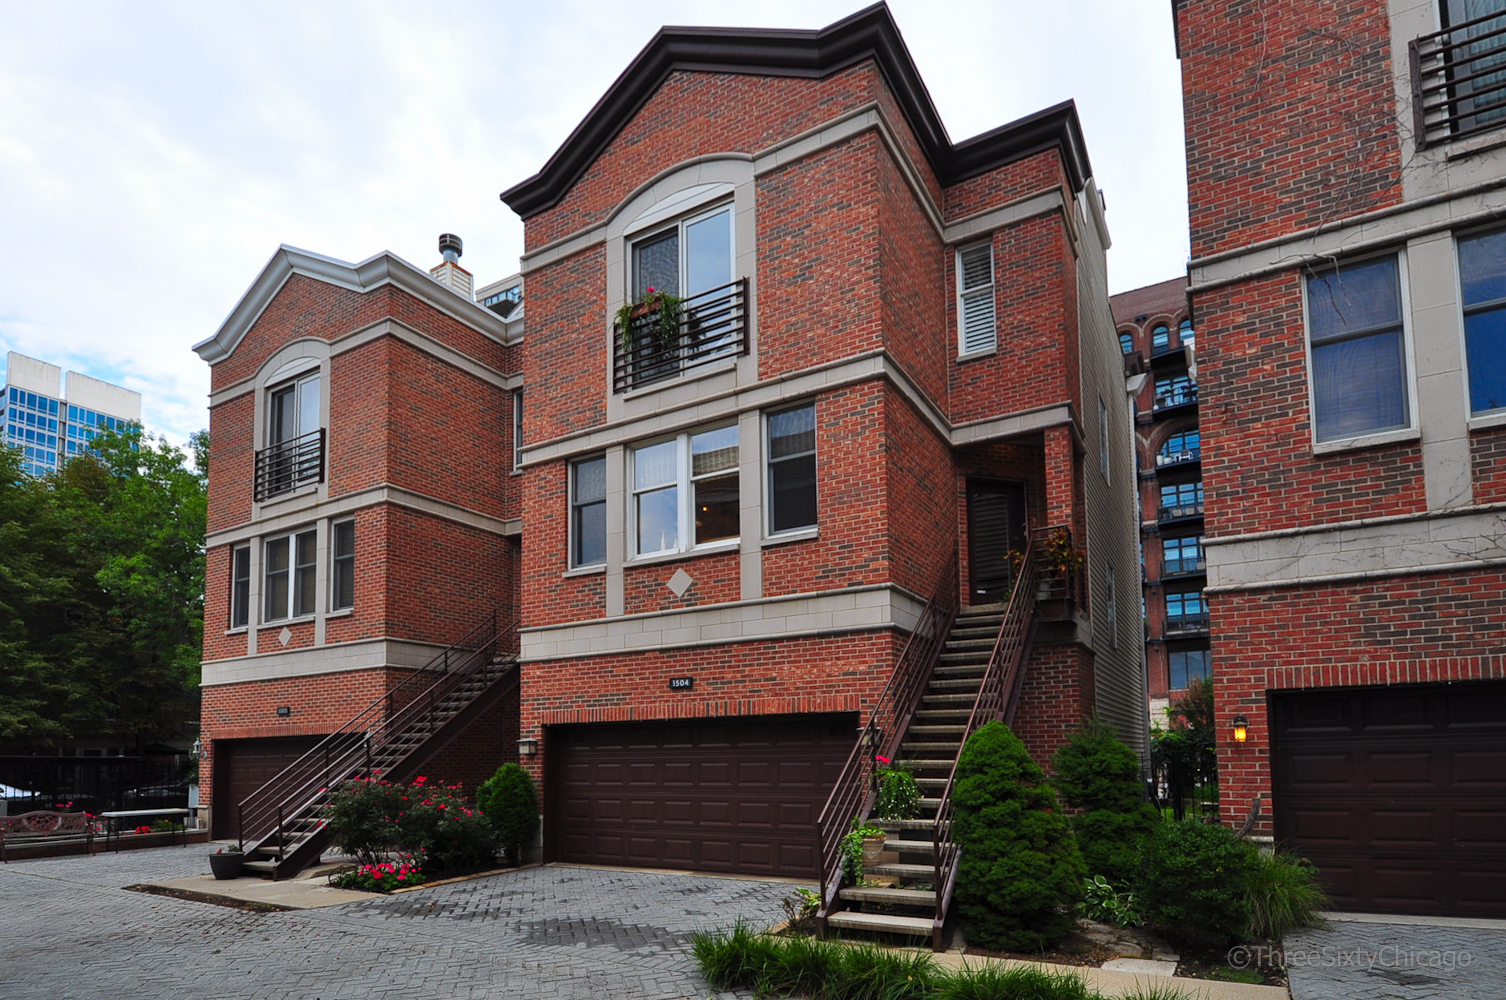 Single Family House For Sale South Loop Chicago 1504 S. State Dearborn Mews